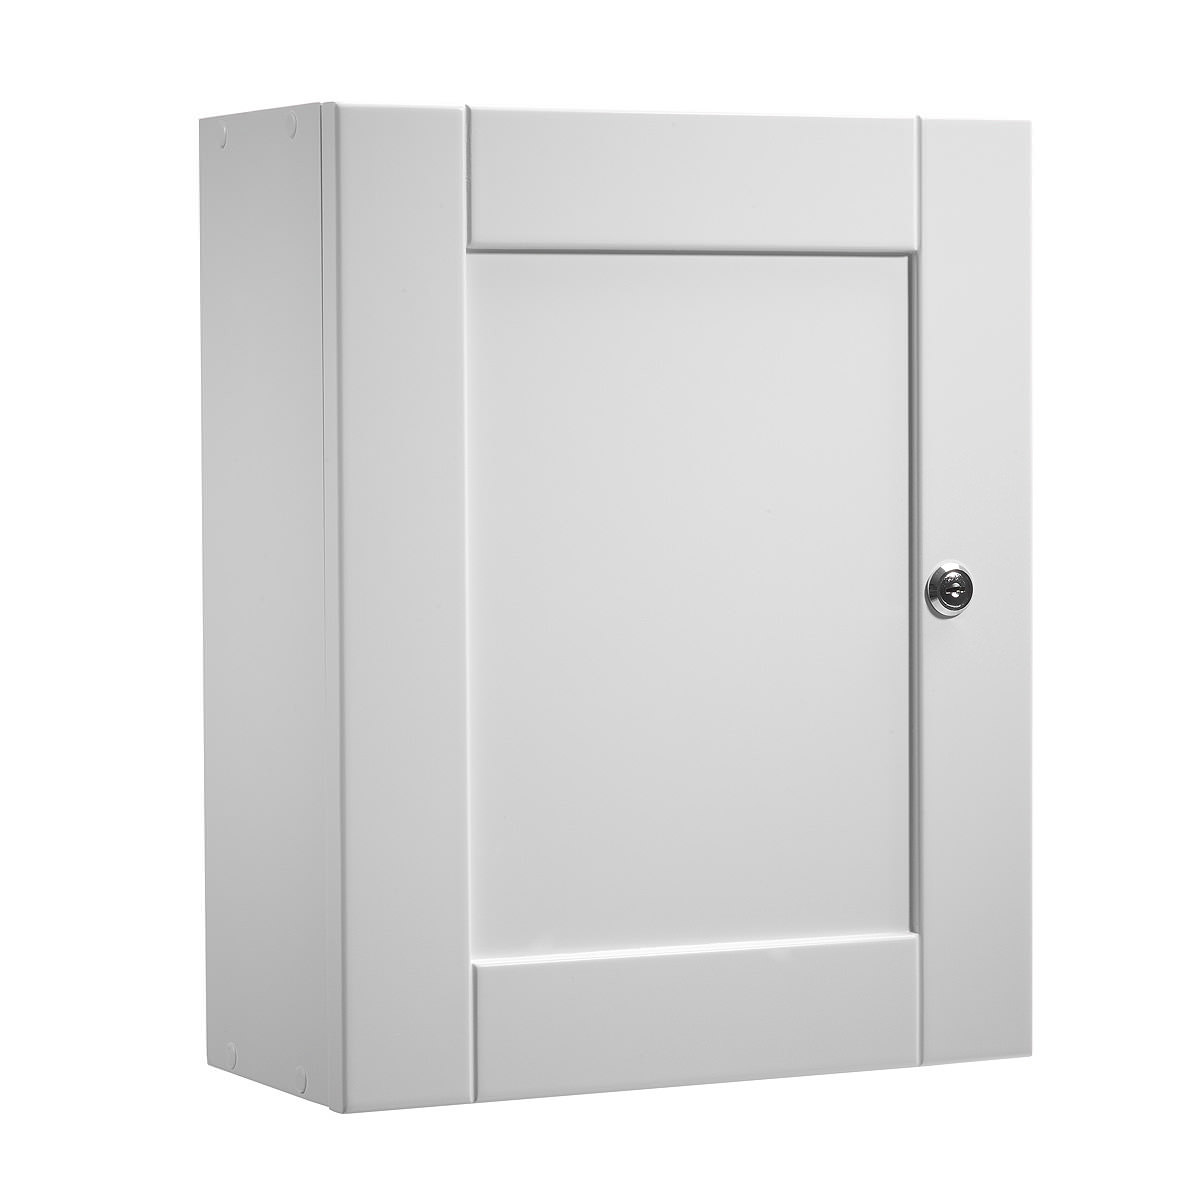 White Bathroom Cabinets | Sale Starts from £52 | QS Supplies UK